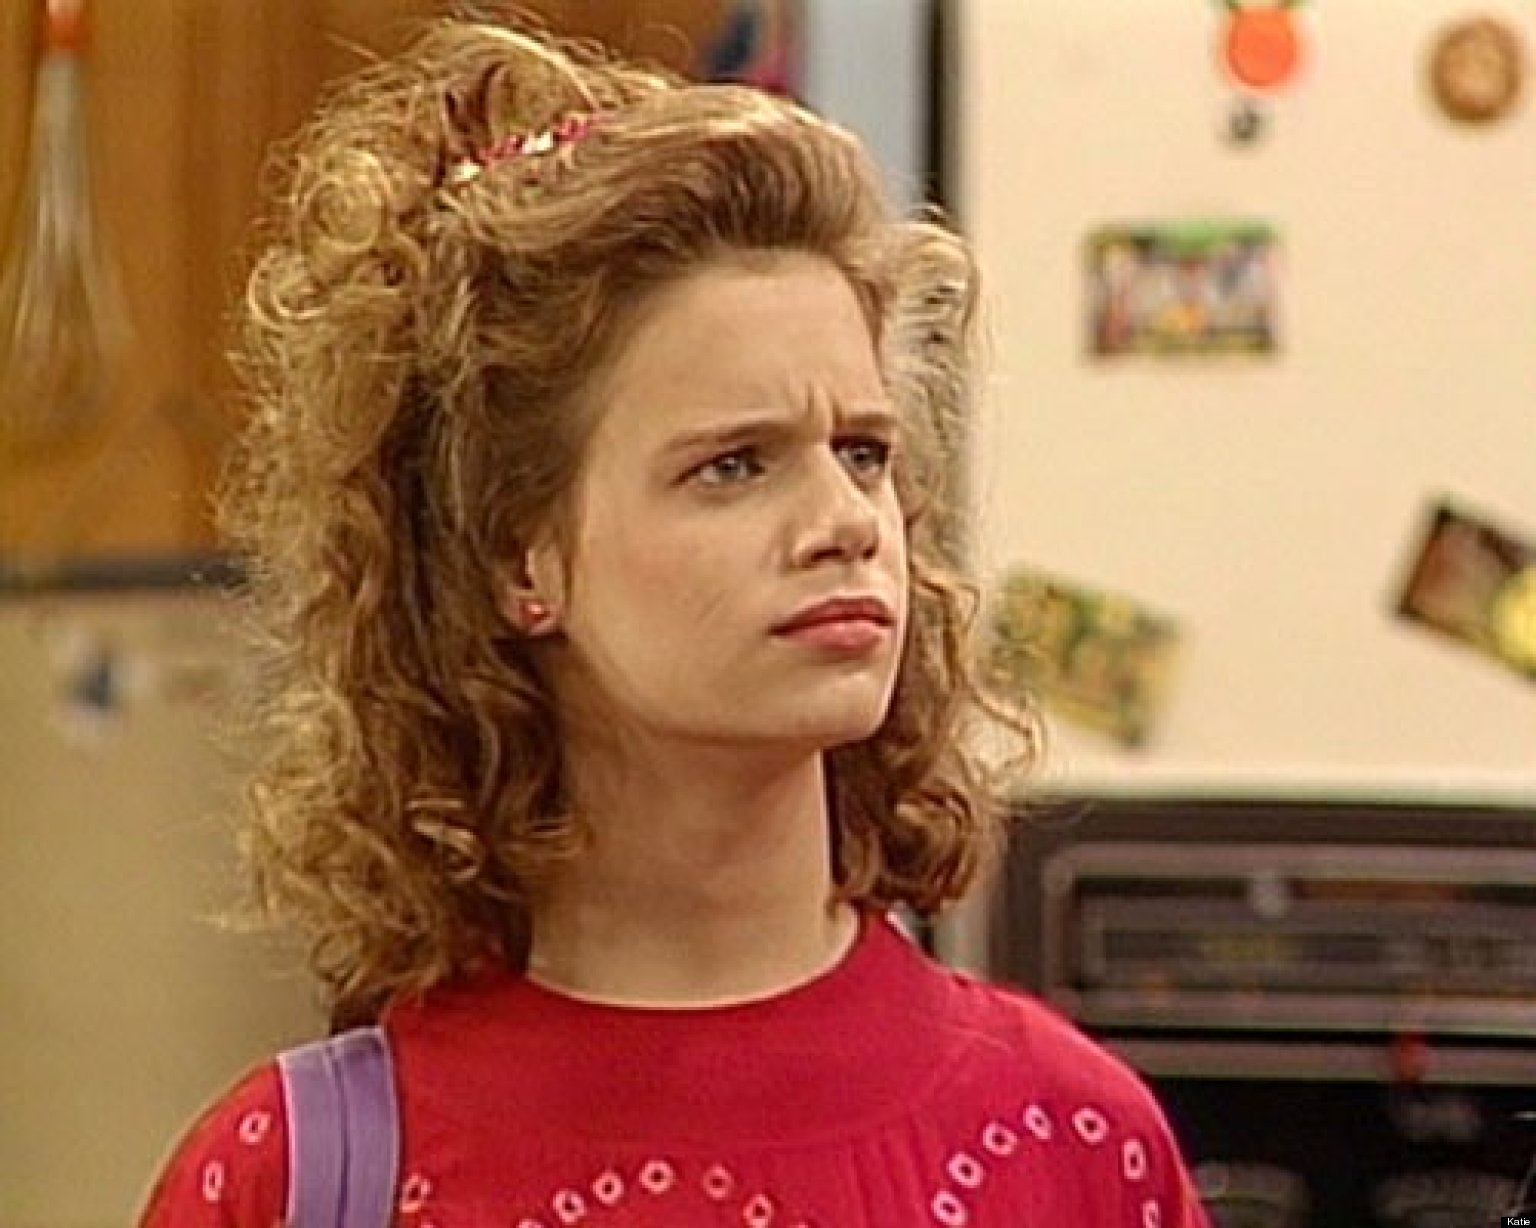 The Kimmy Gibbler Guide toStyle picture